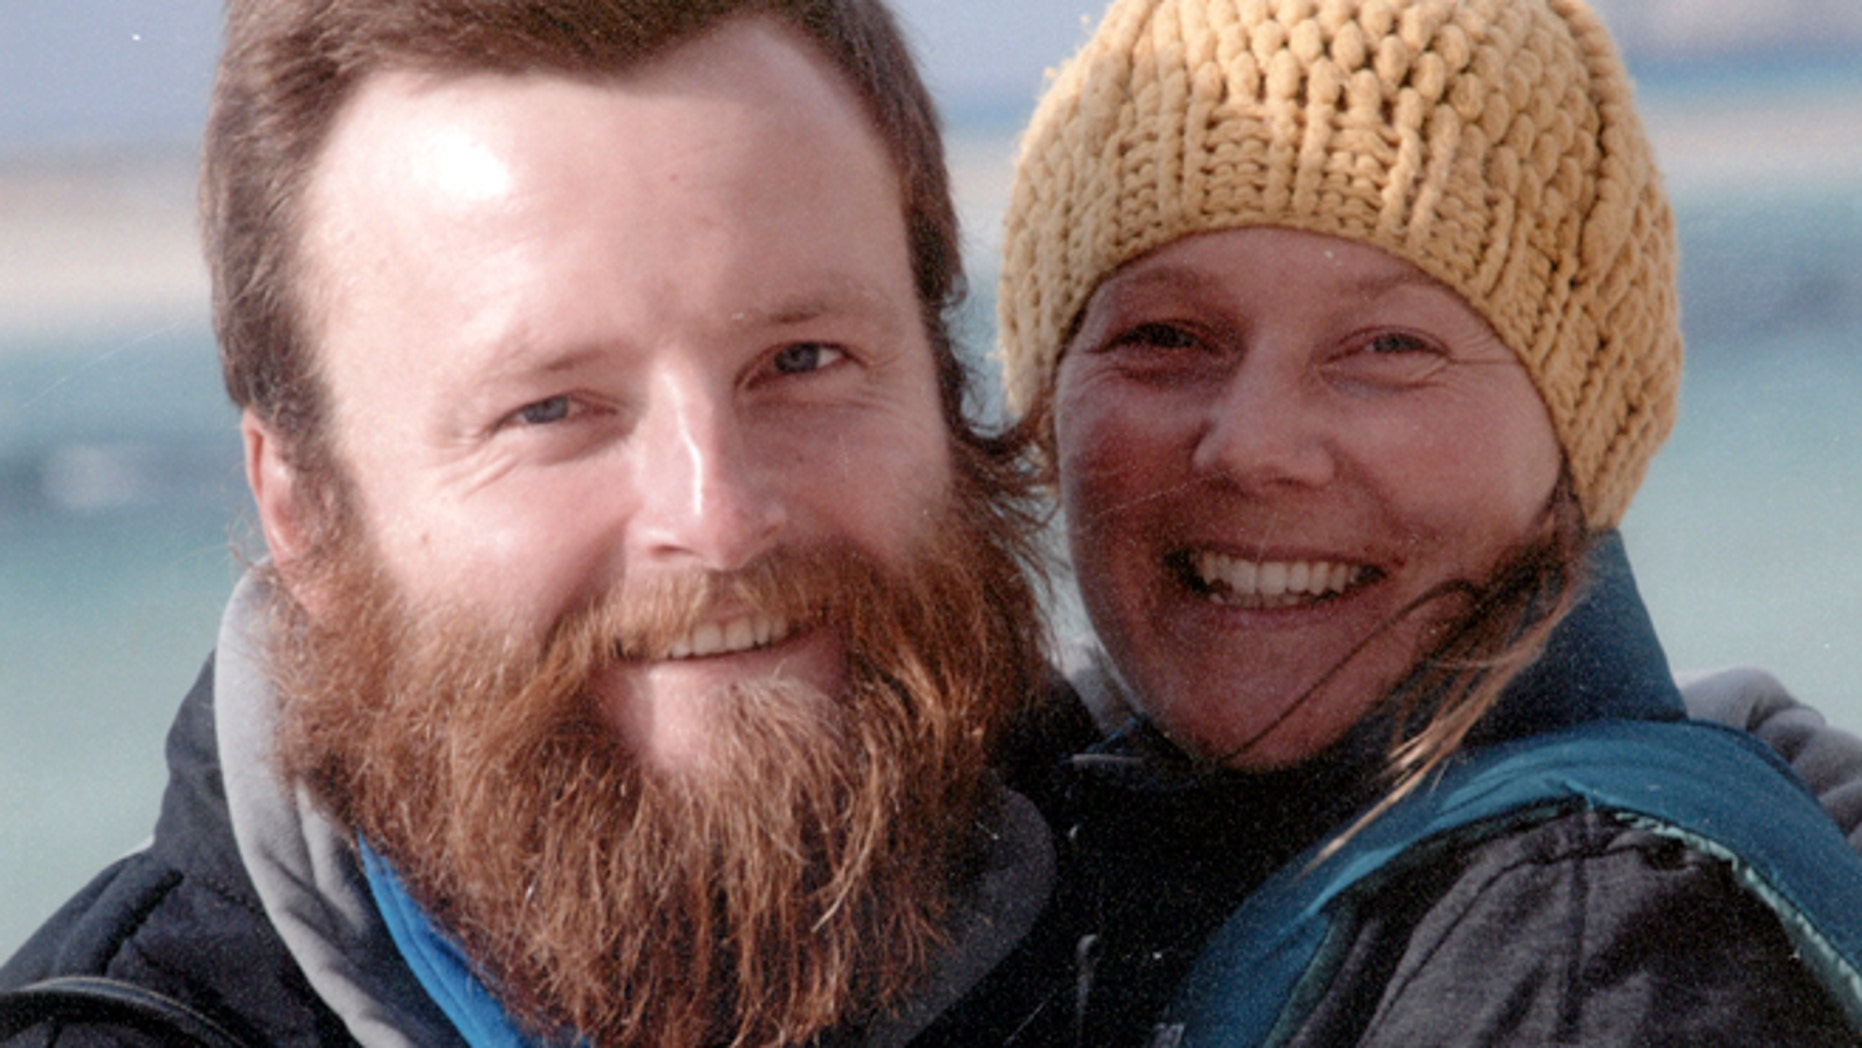 In this undated family photo supplied Monday Feb. 18, 2013, showing British couple Peter Root and Mary Thompson, both 34, who were killed in Thailand Wednesday Feb. 13, 2013, in a road accident during their round-the-world cycling odyssey.